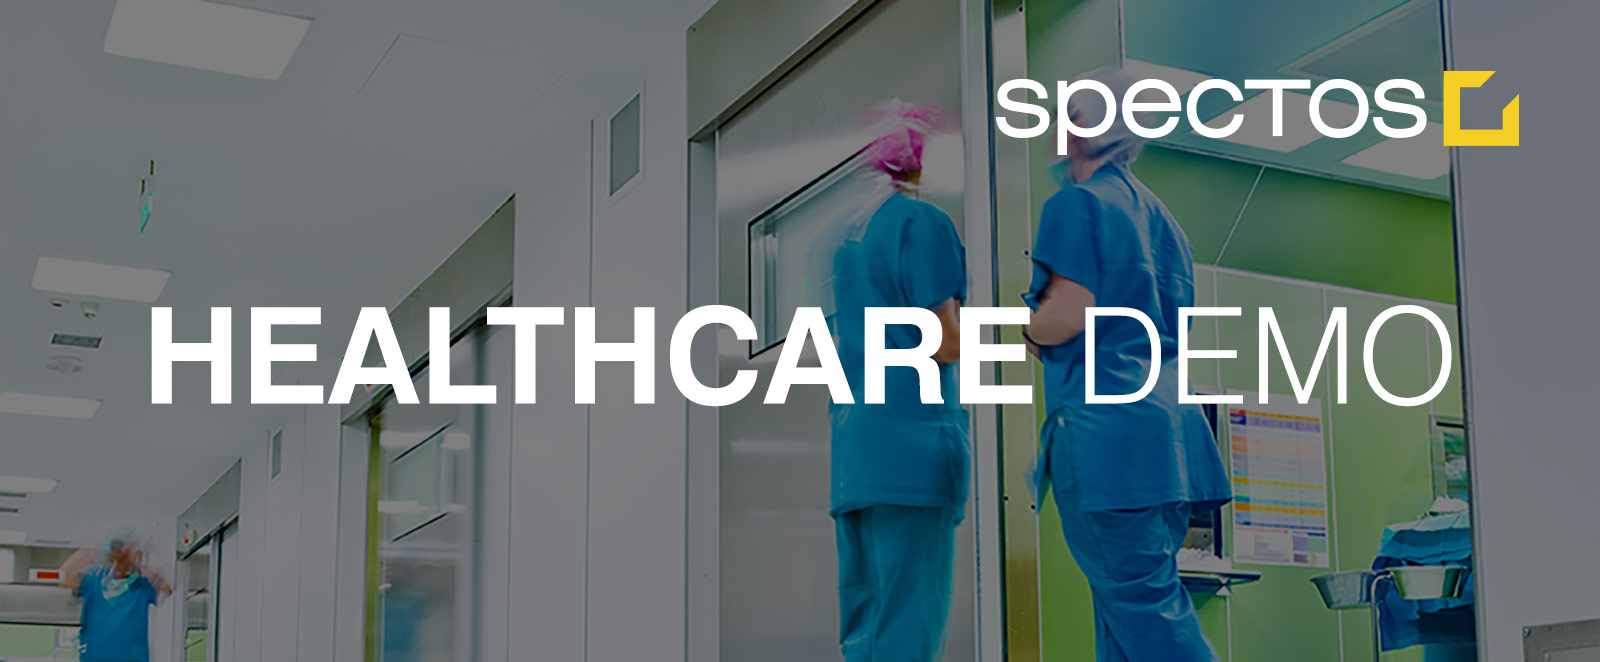 partners healthcare case aanlysis Find company research, competitor information, contact details & financial data for partners healthcare system, inc get the latest business insights from d&b hoovers.